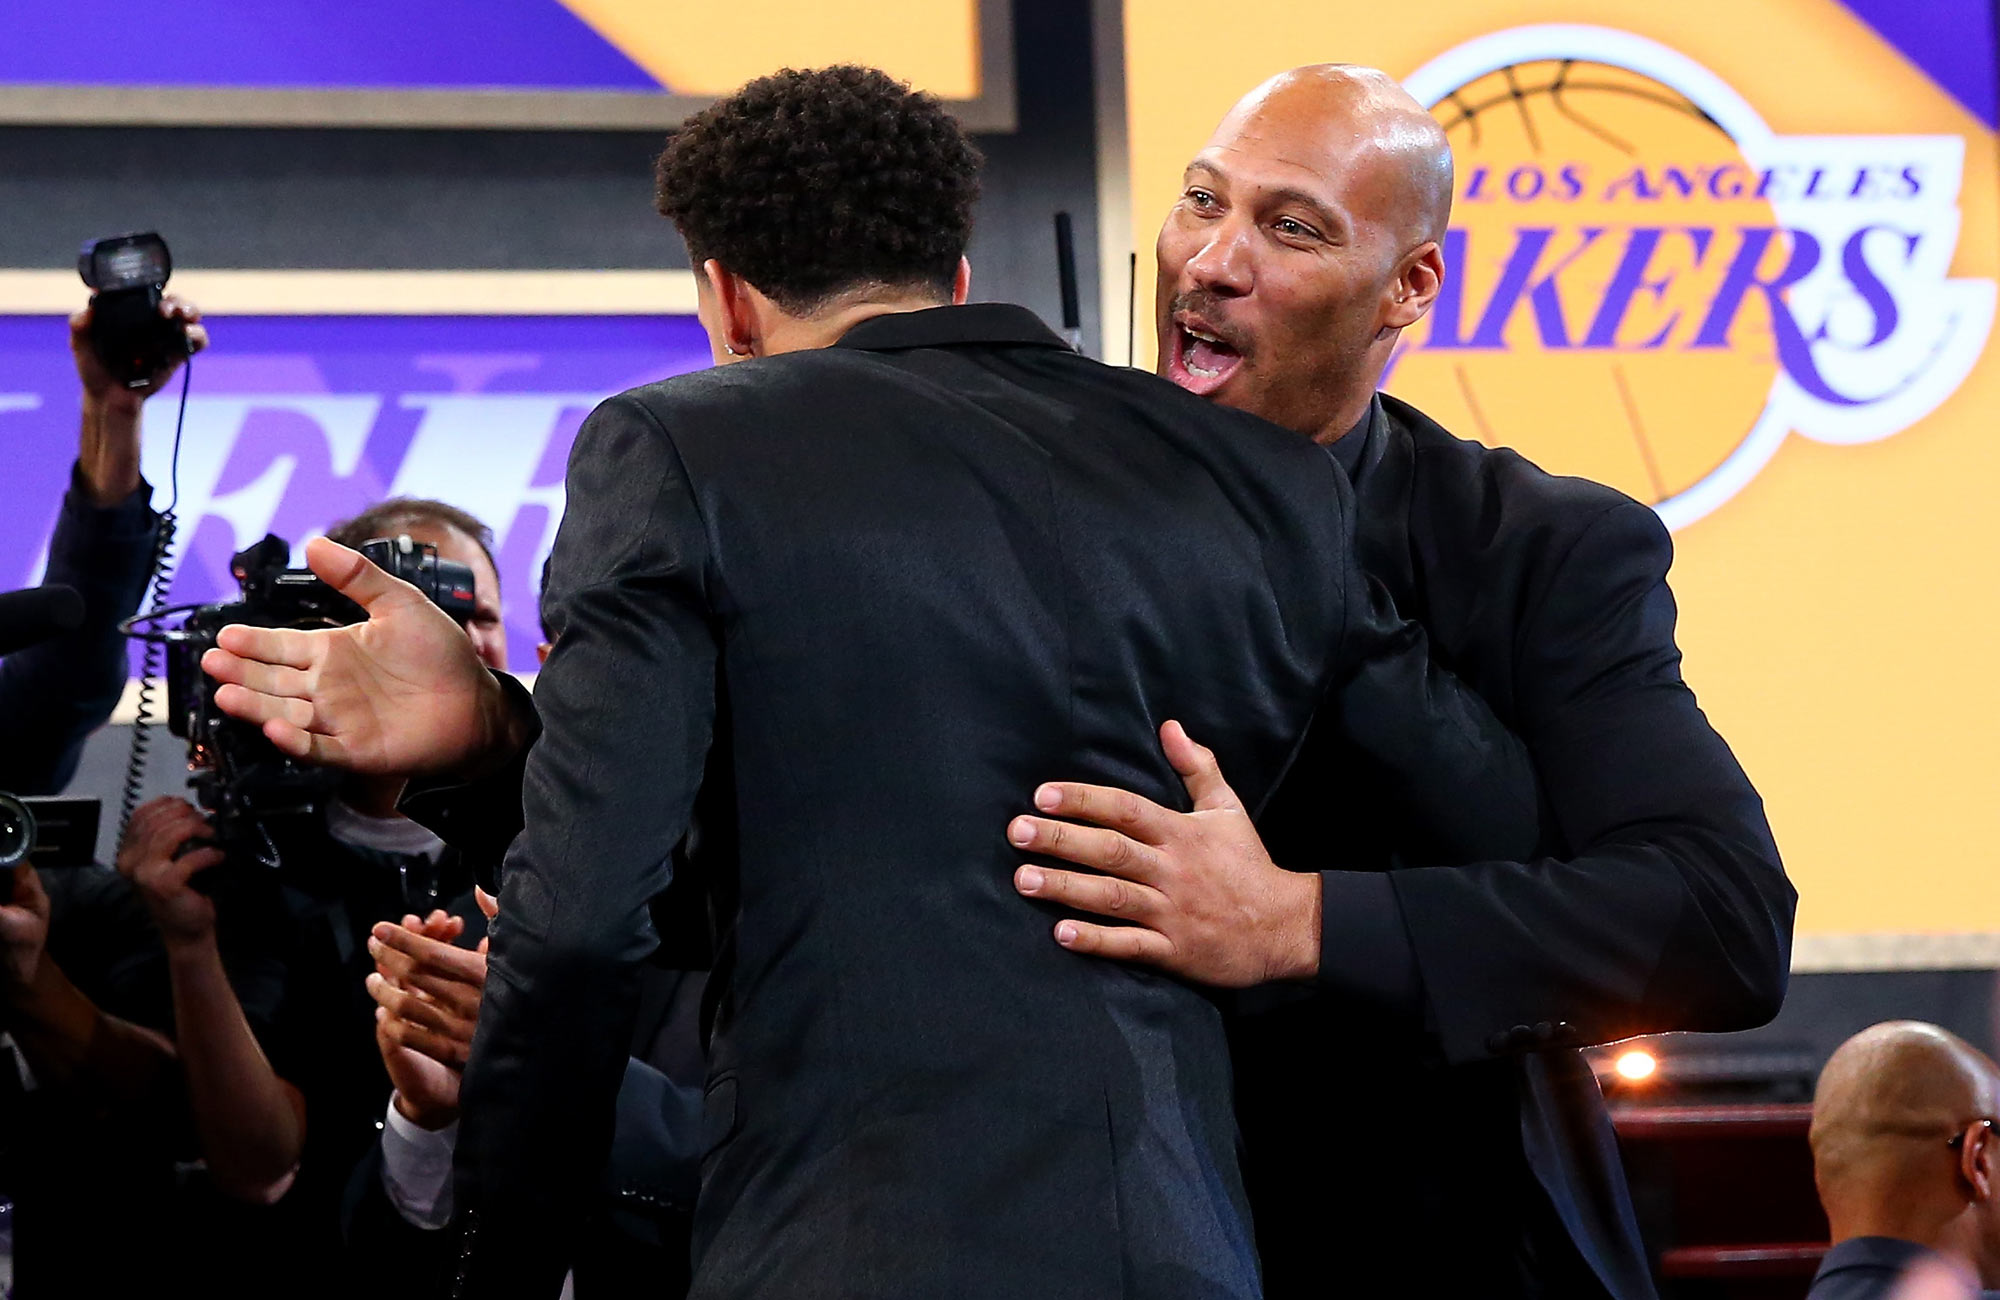 Lakers GM compares Lonzo Ball to Tom Brady, Aaron Rodgers